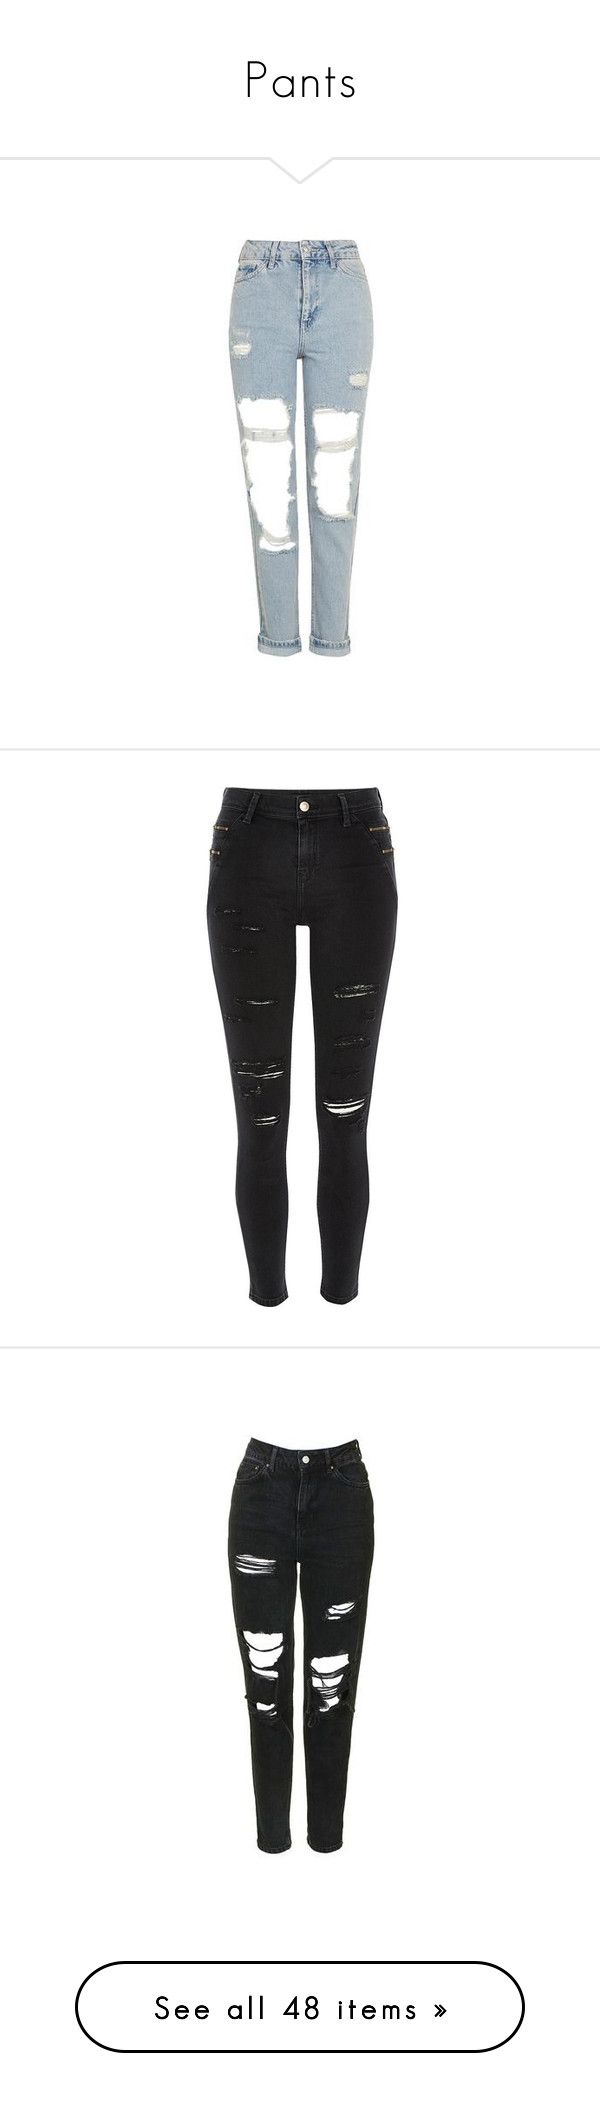 """""""Pants"""" by mat-beades ❤ liked on Polyvore featuring jeans, bottoms, bleach stone, bleached ripped jeans, high rise jeans, ripped jeans, high-waisted jeans, blue ripped jeans, pants and calças"""